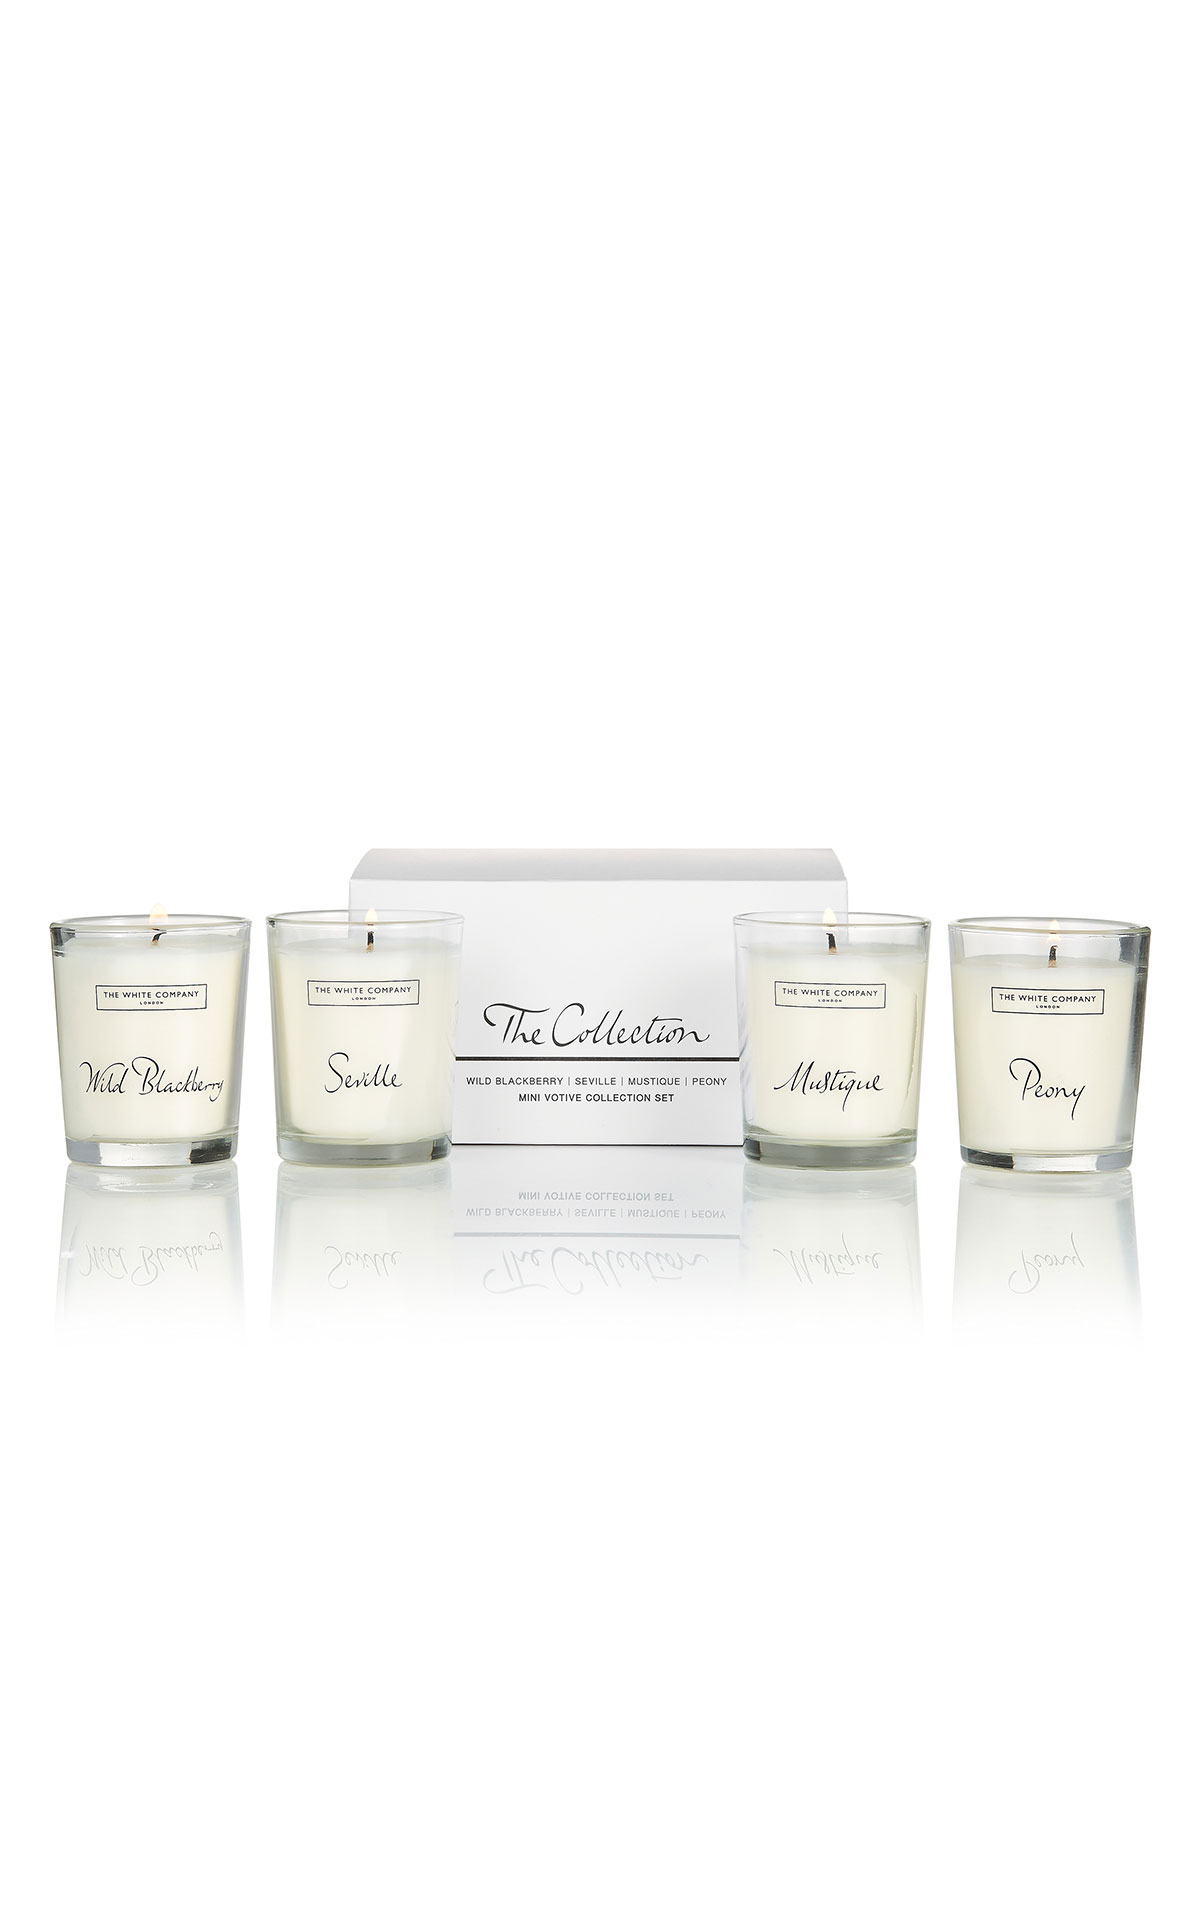 The White Company The collection votive set from Bicester Village